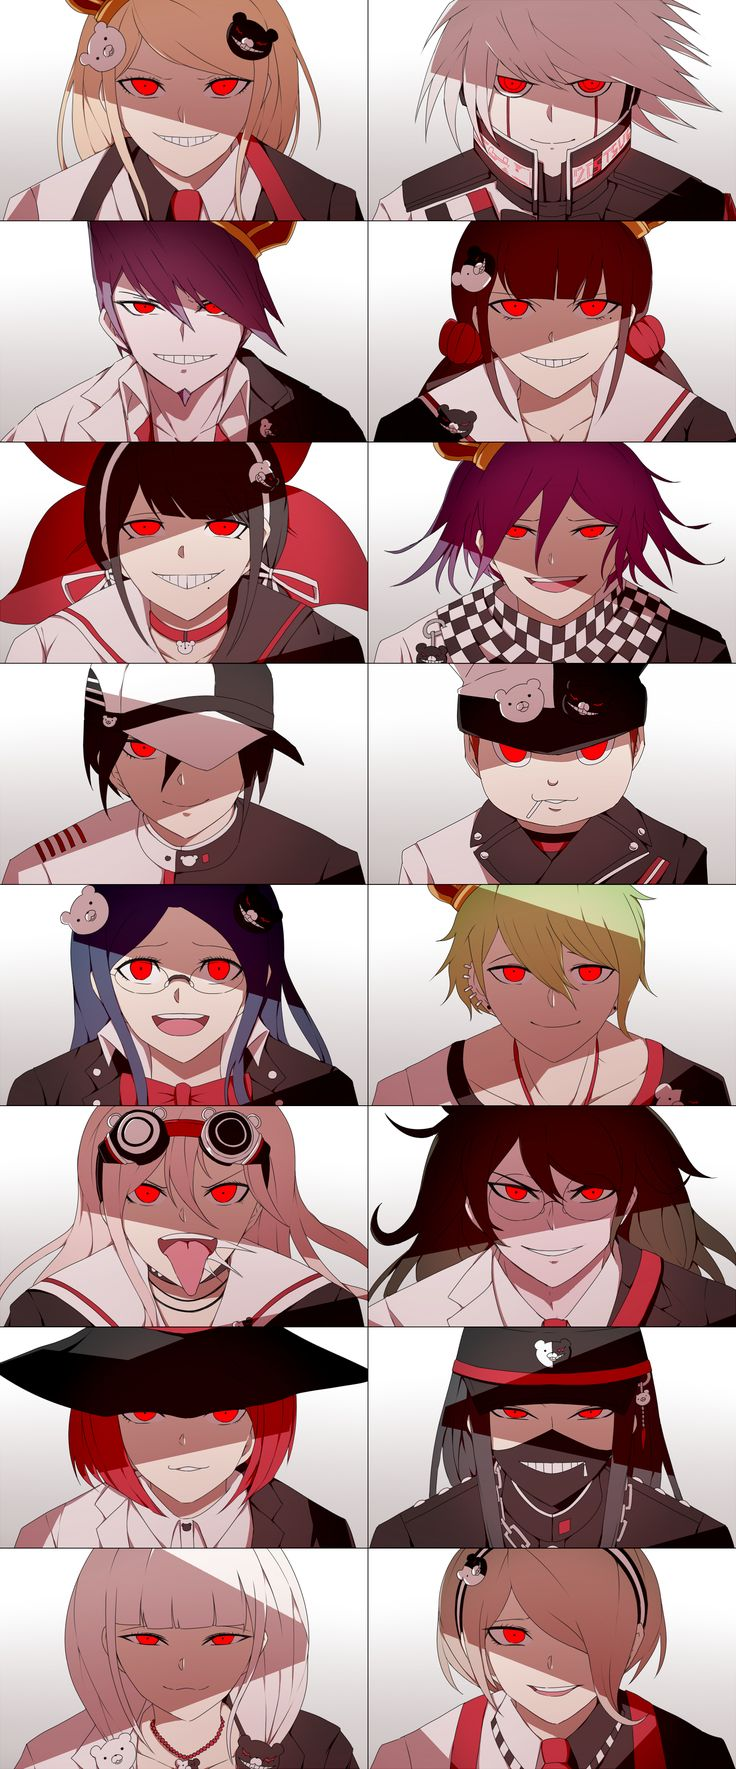 Top 25 ideas about dangan ronpa on pinterest sodas the games and - Find This Pin And More On Dangan Ronpa